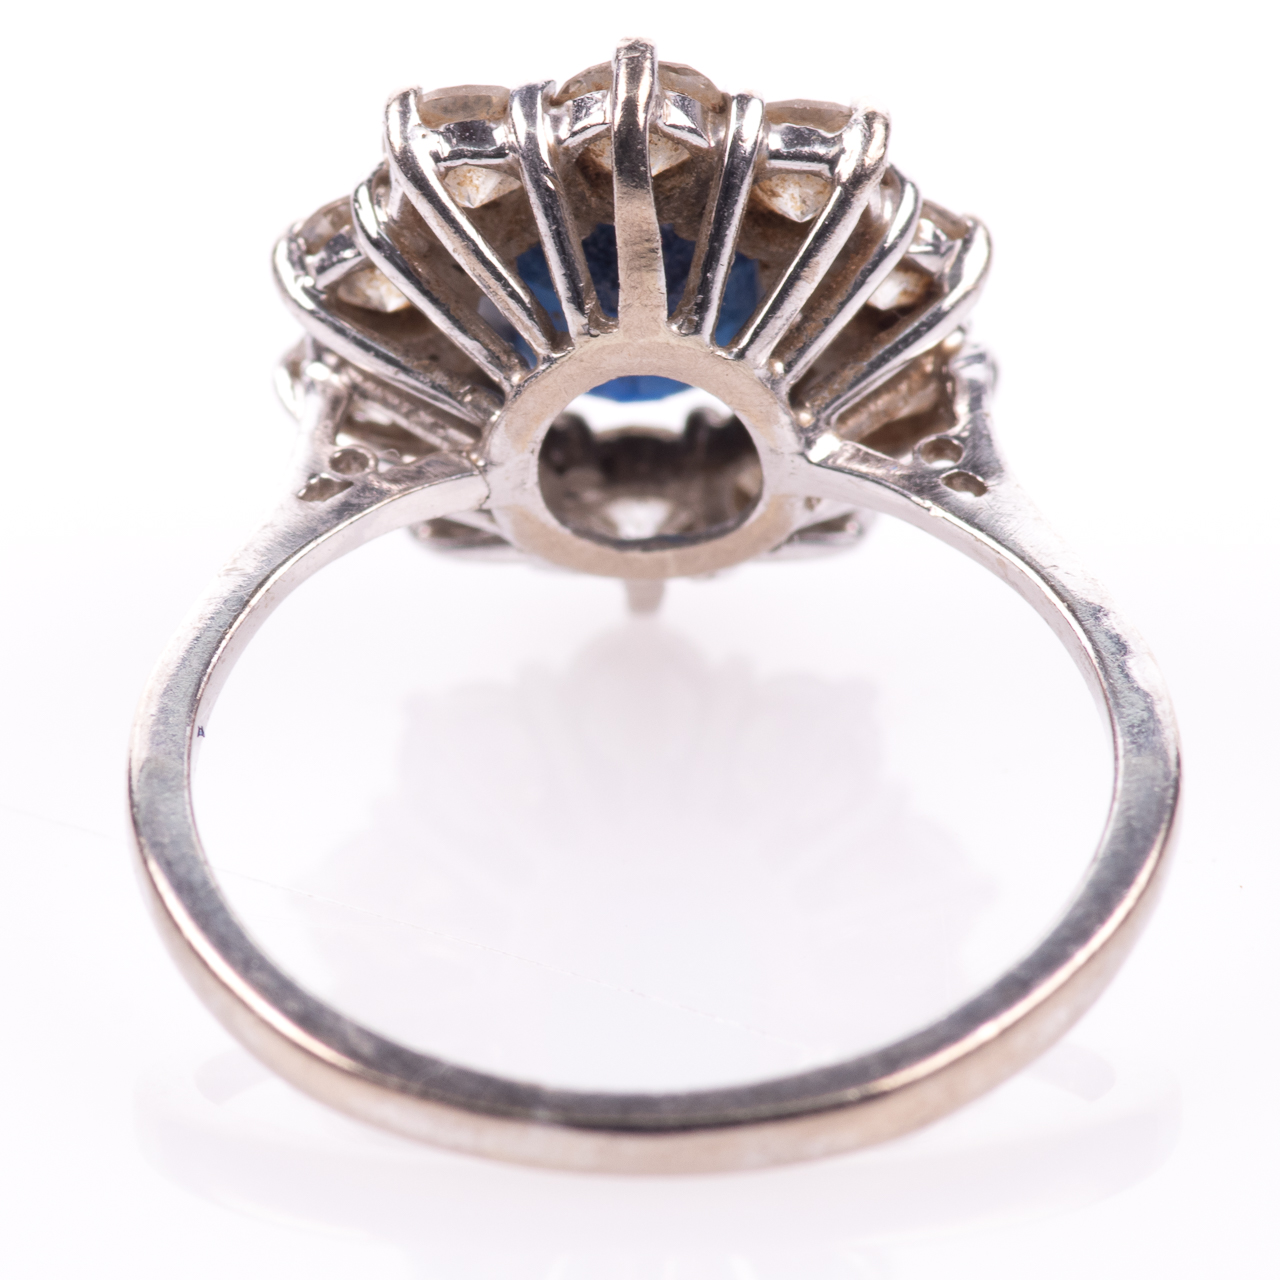 18ct White Gold 1ct Sapphire & 1ct Diamond Cluster Ring - Image 5 of 7